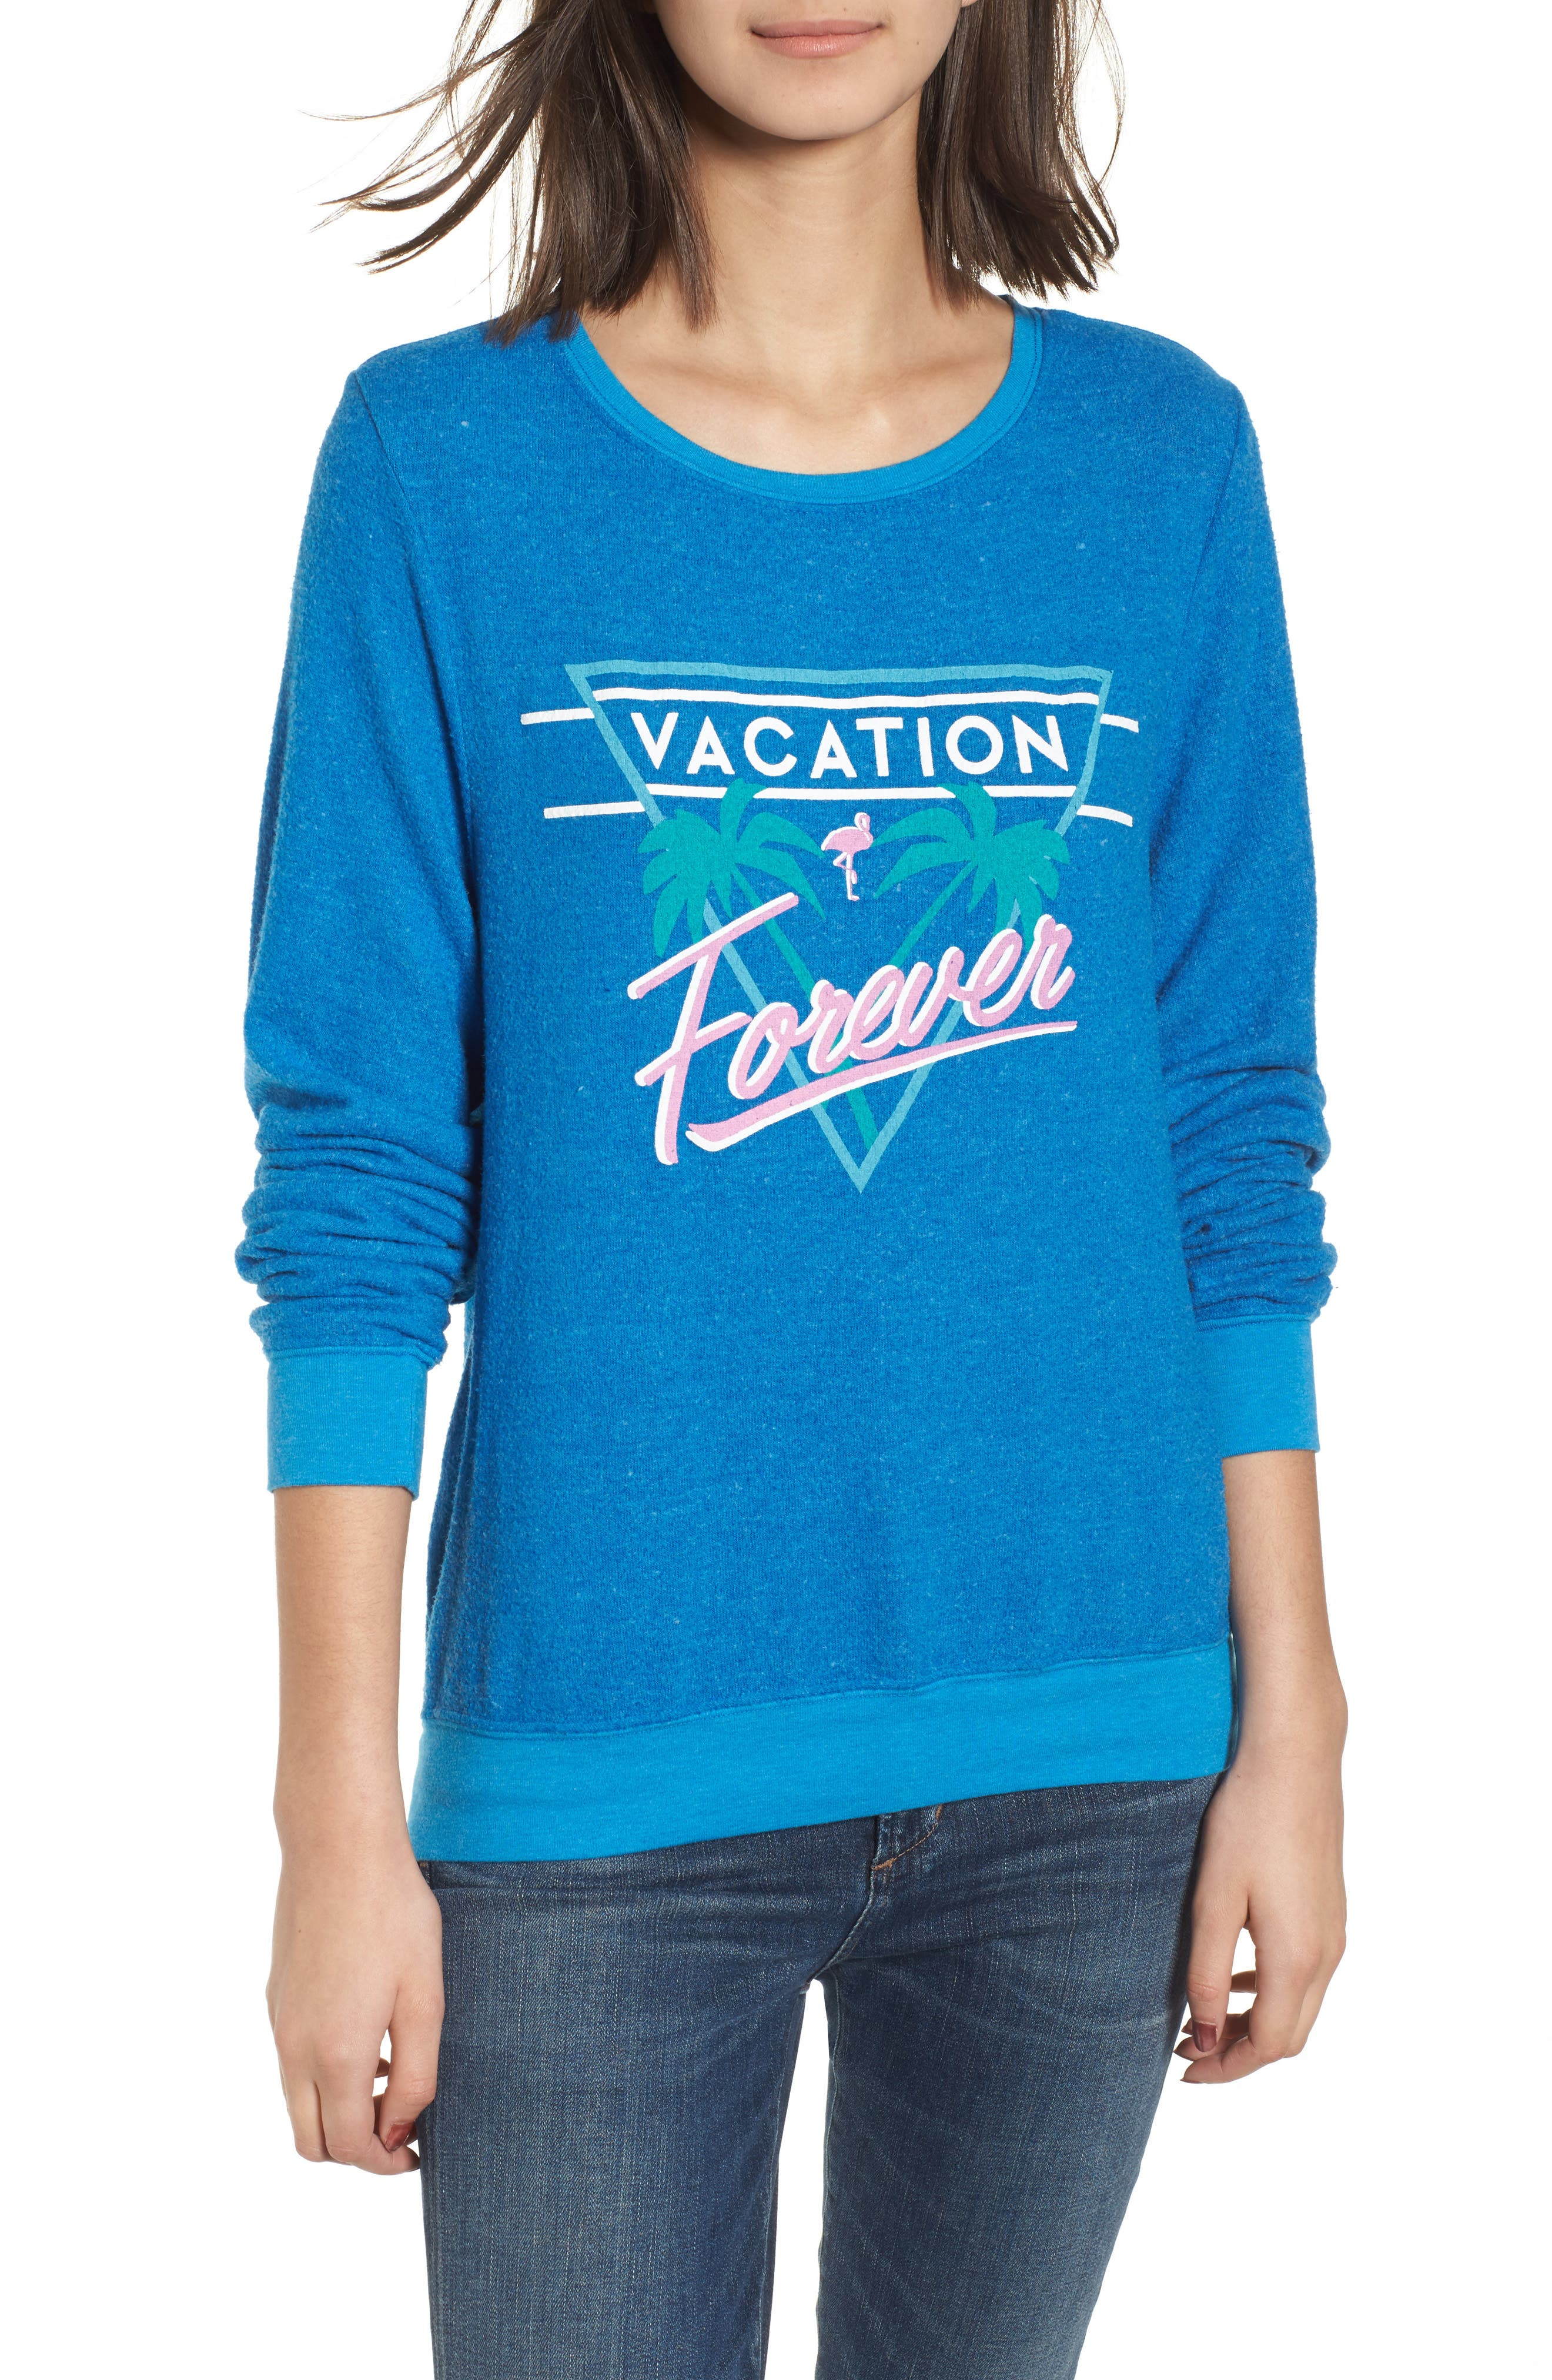 Vacation Forever Sweatshirt,                             Main thumbnail 1, color,                             401